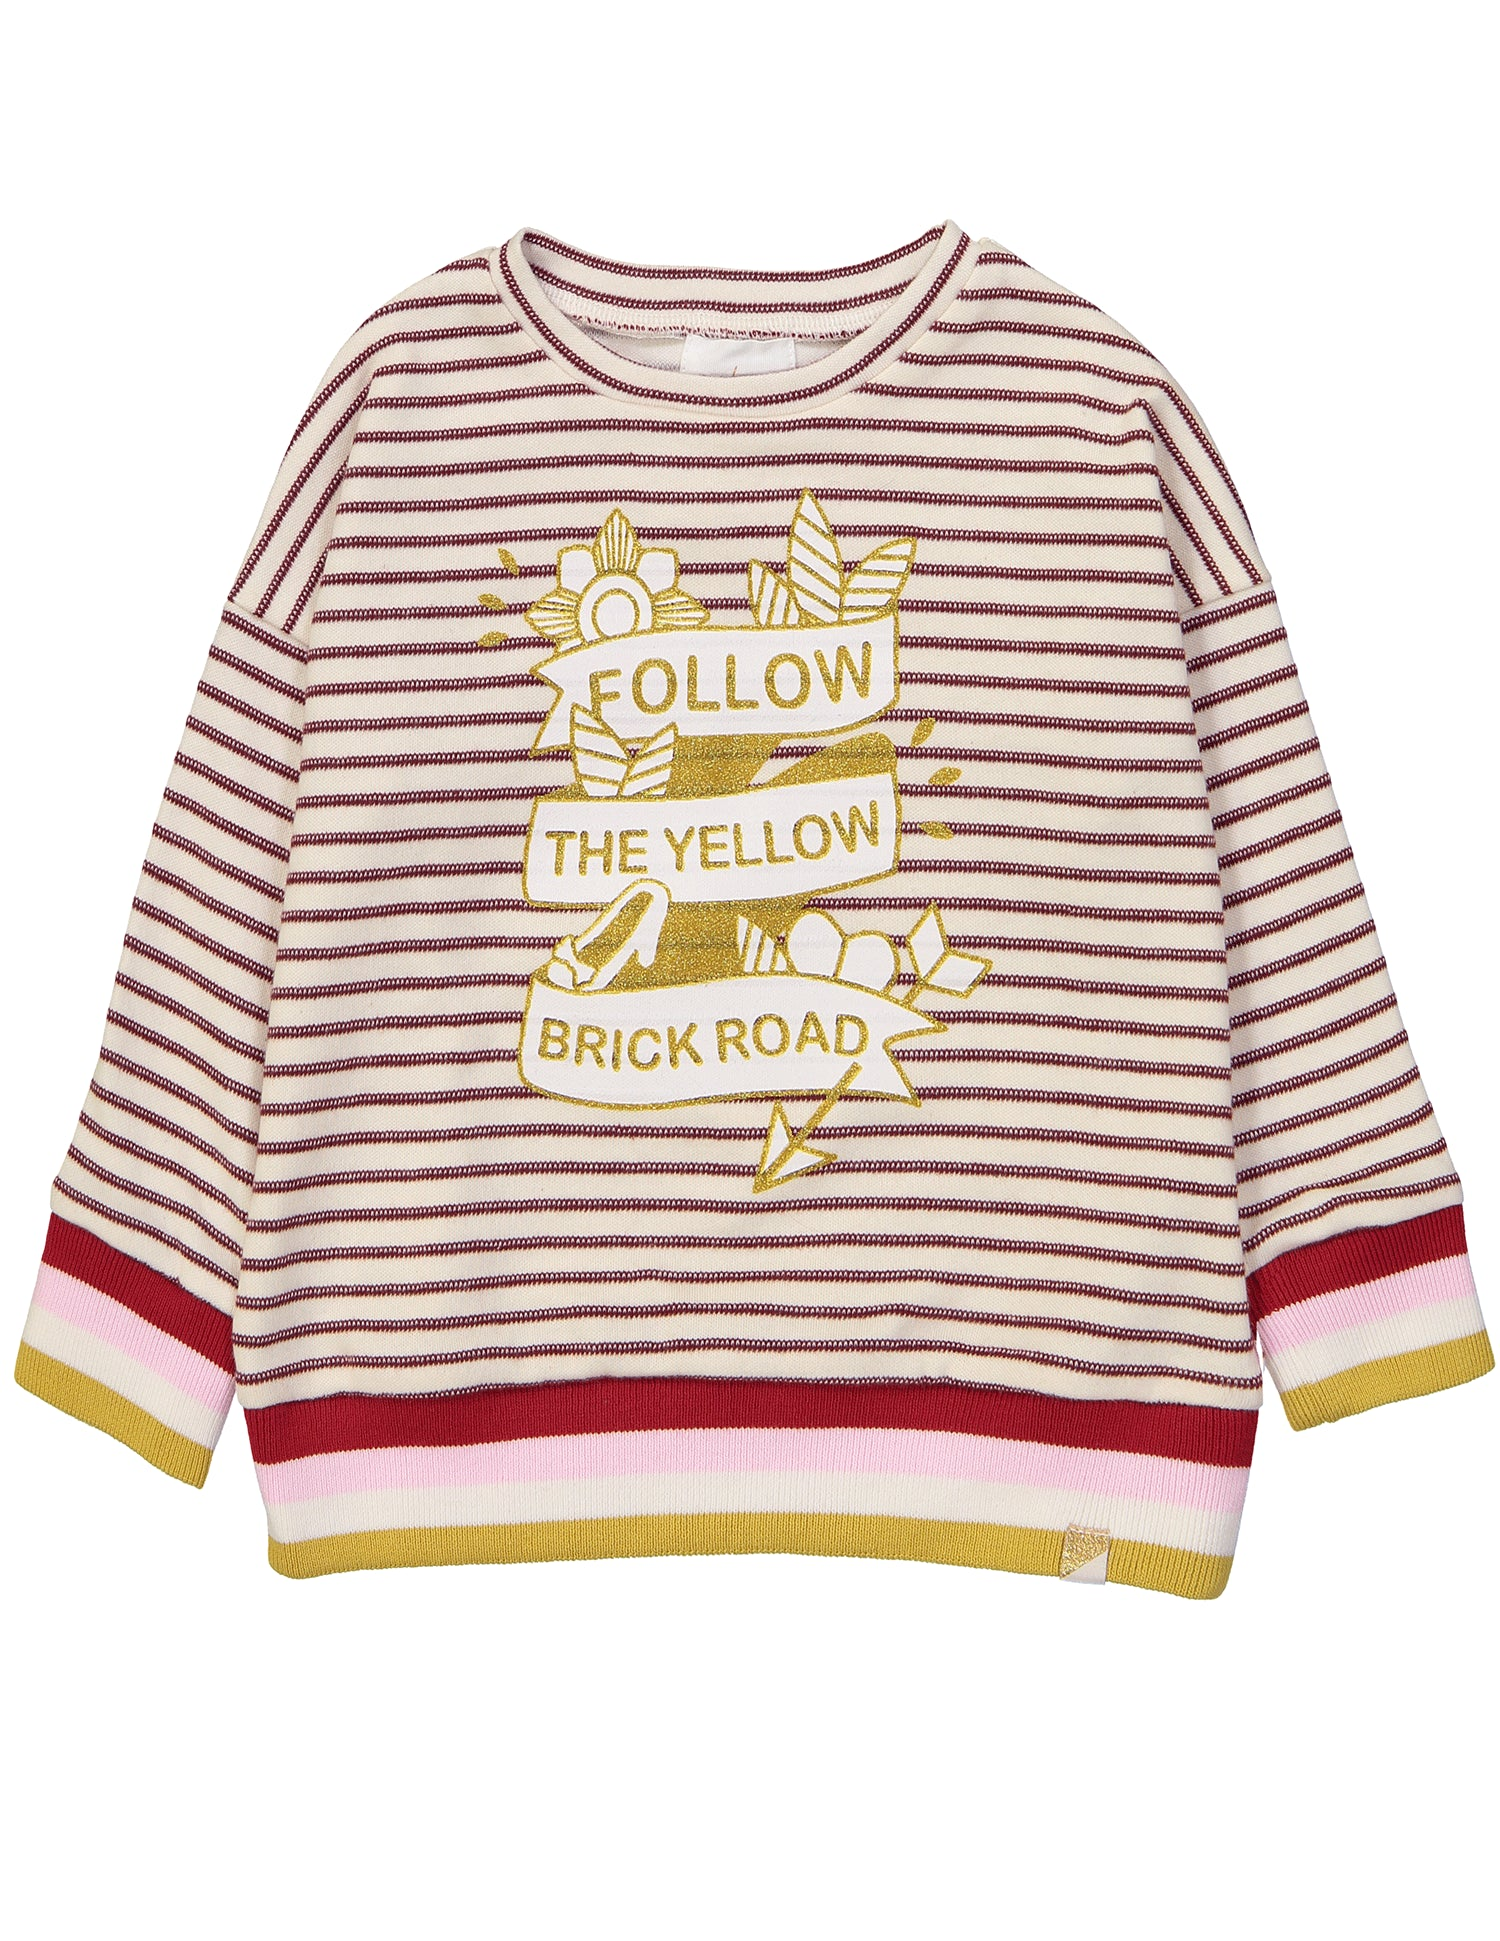 Yellow Brick Road Striped Sweater